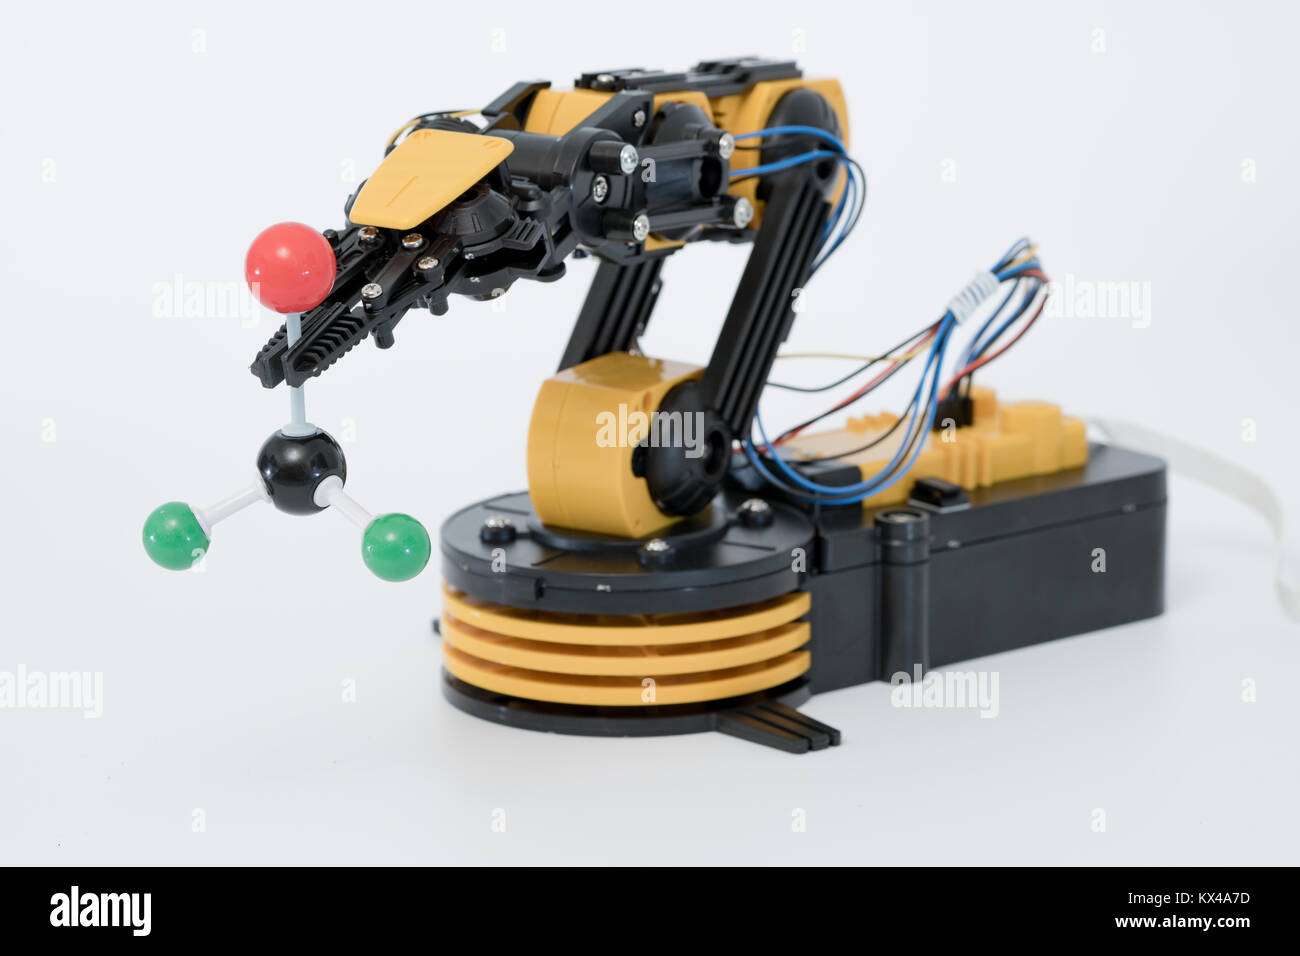 Plastic robot arm model - Stock Image